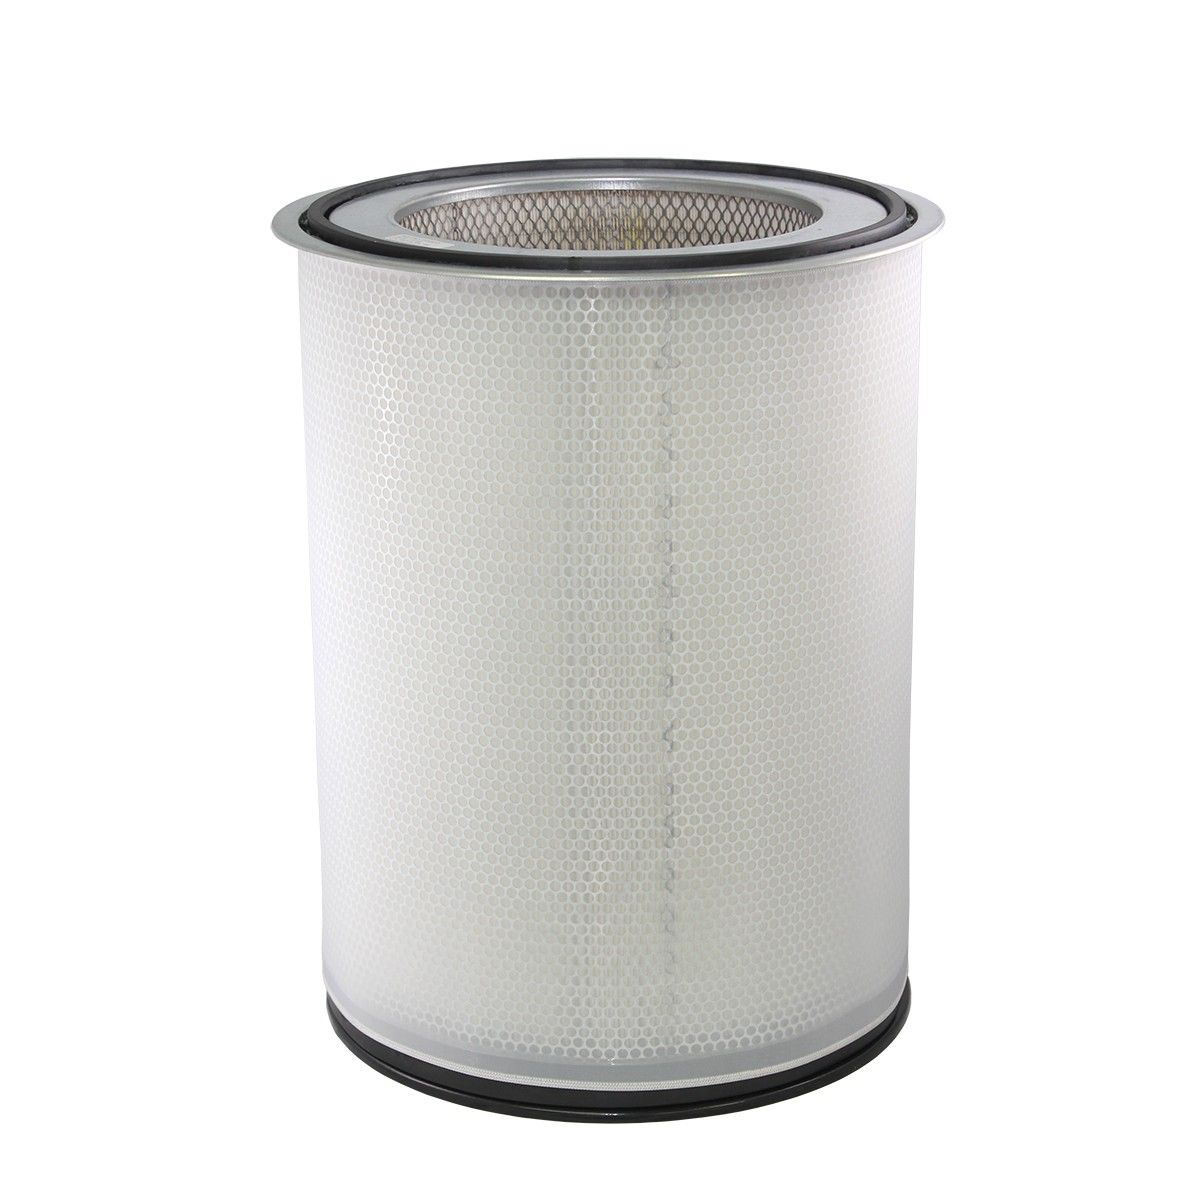 Torit Vibra Shake Heavy-Duty Cartridge Filters - Designed for Torit VS-1200 (Z42-012) / Torit VS-2400